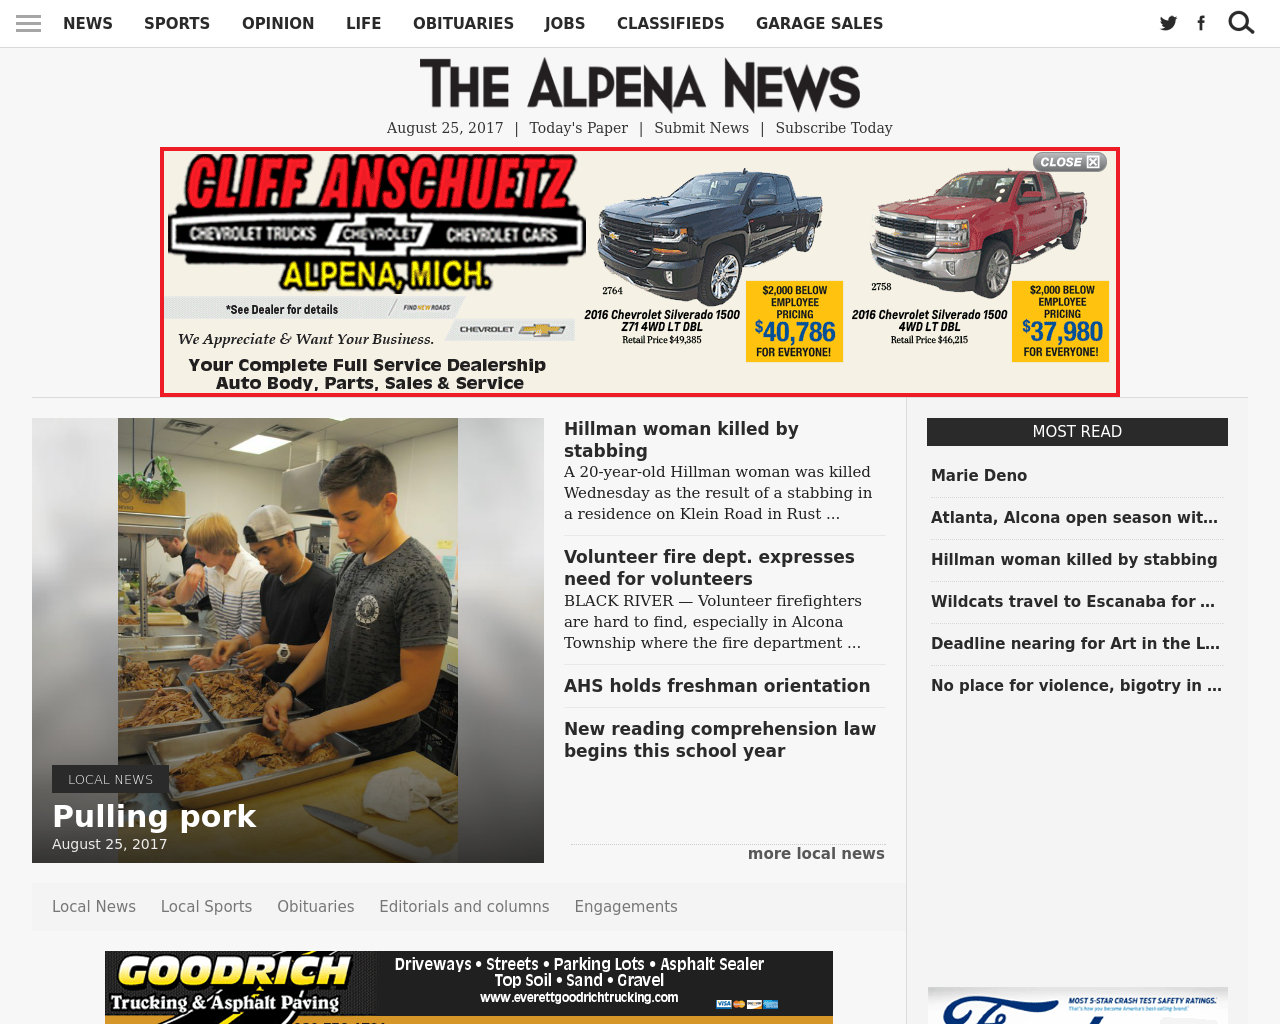 The-Alpena-News-Advertising-Reviews-Pricing